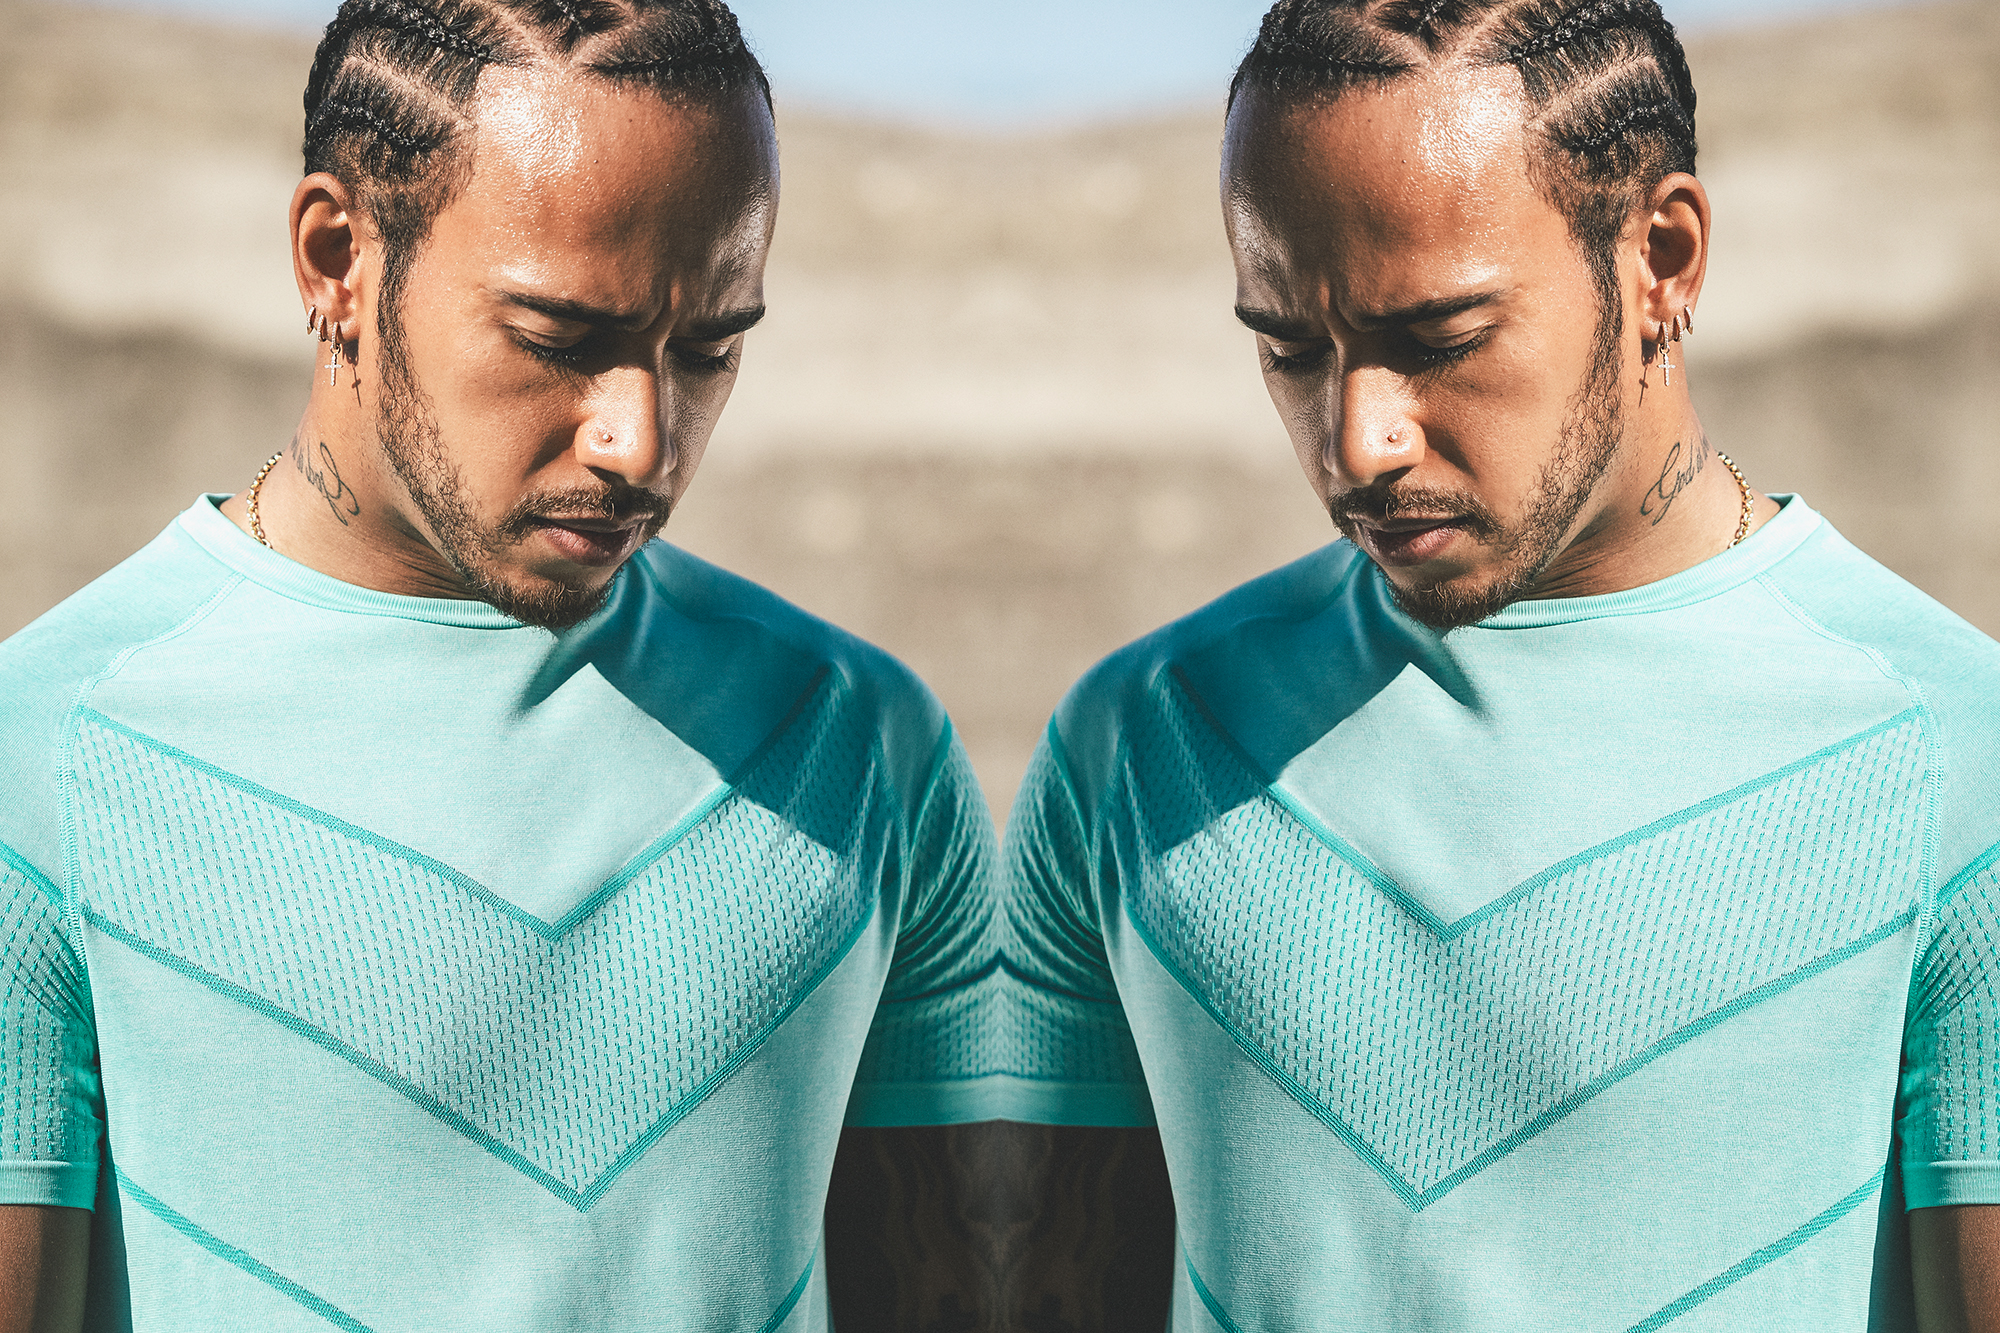 Lewis Hamilton Formula 1 champion in PUMA LQD Cell Shot portrait